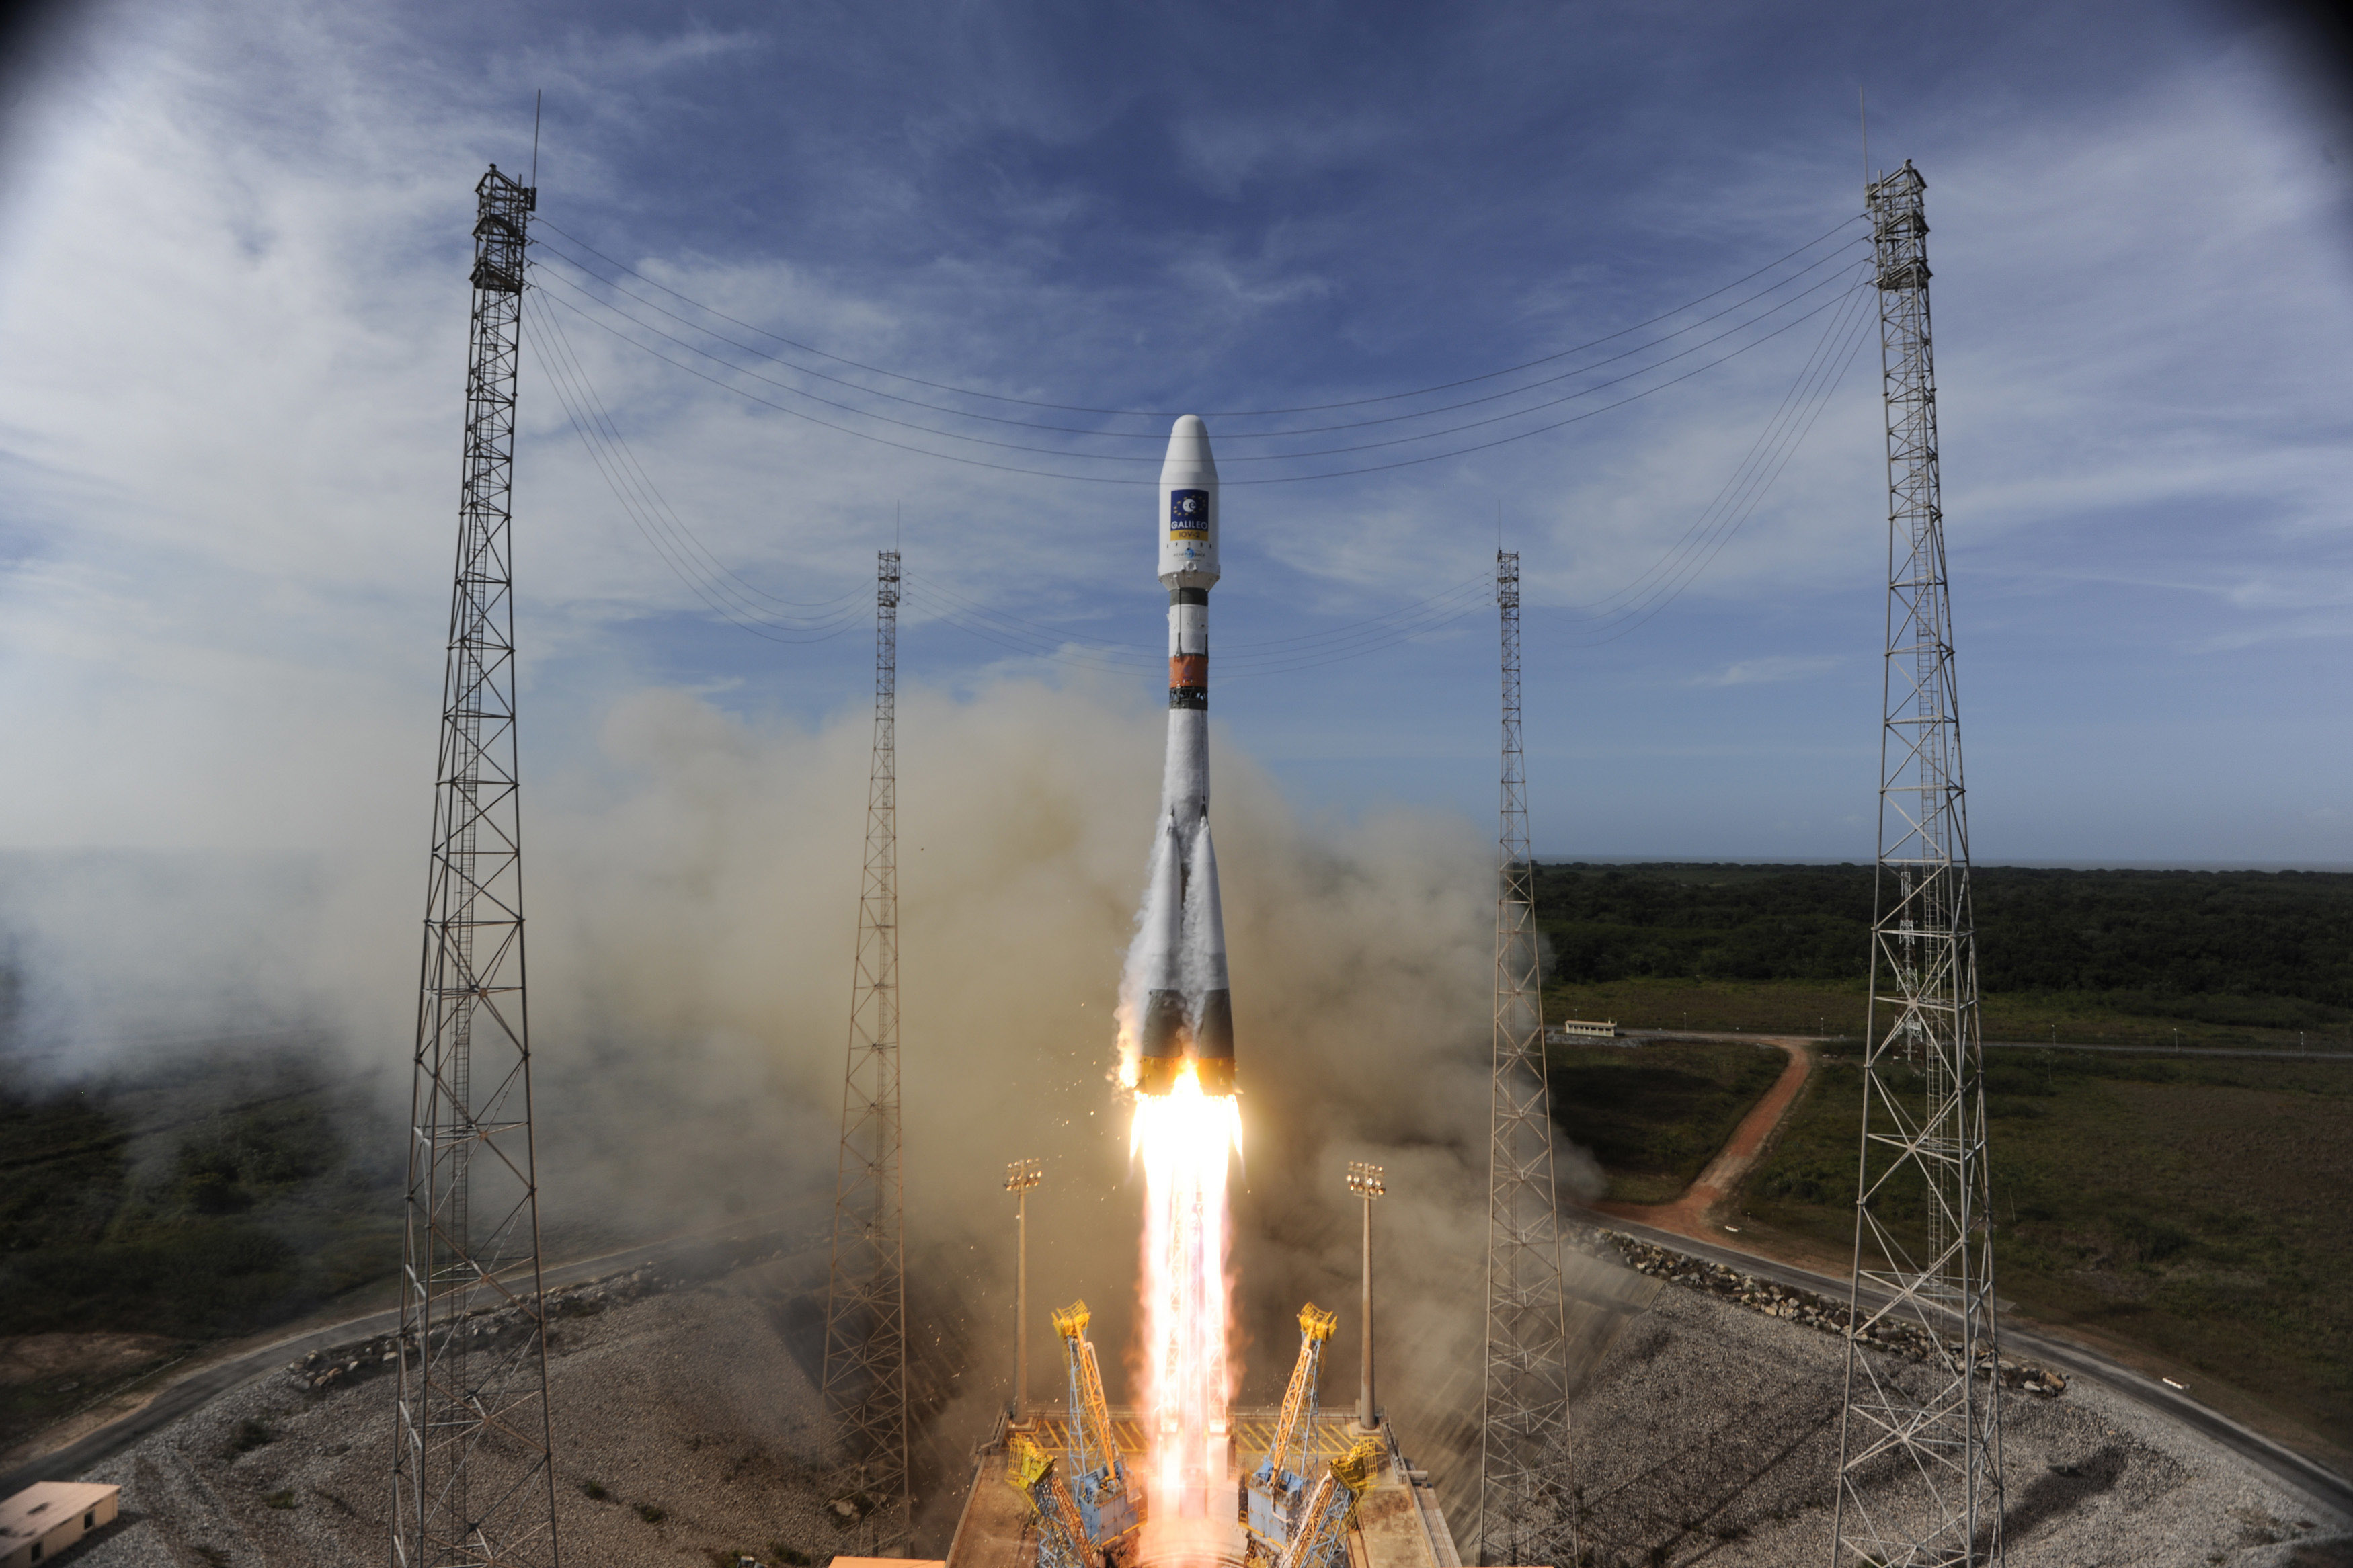 The Soyuz rocket lifts off from Europe's Spaceport in French Guiana on its mission to place the second pair of Galileo In-Orbit Validation satellites into orbit, on October 12, 2012. Galileo will become fully operational by 2020 and intends to give Europe full independence from the U.S., Russian and Chinese controlled GPS systems.